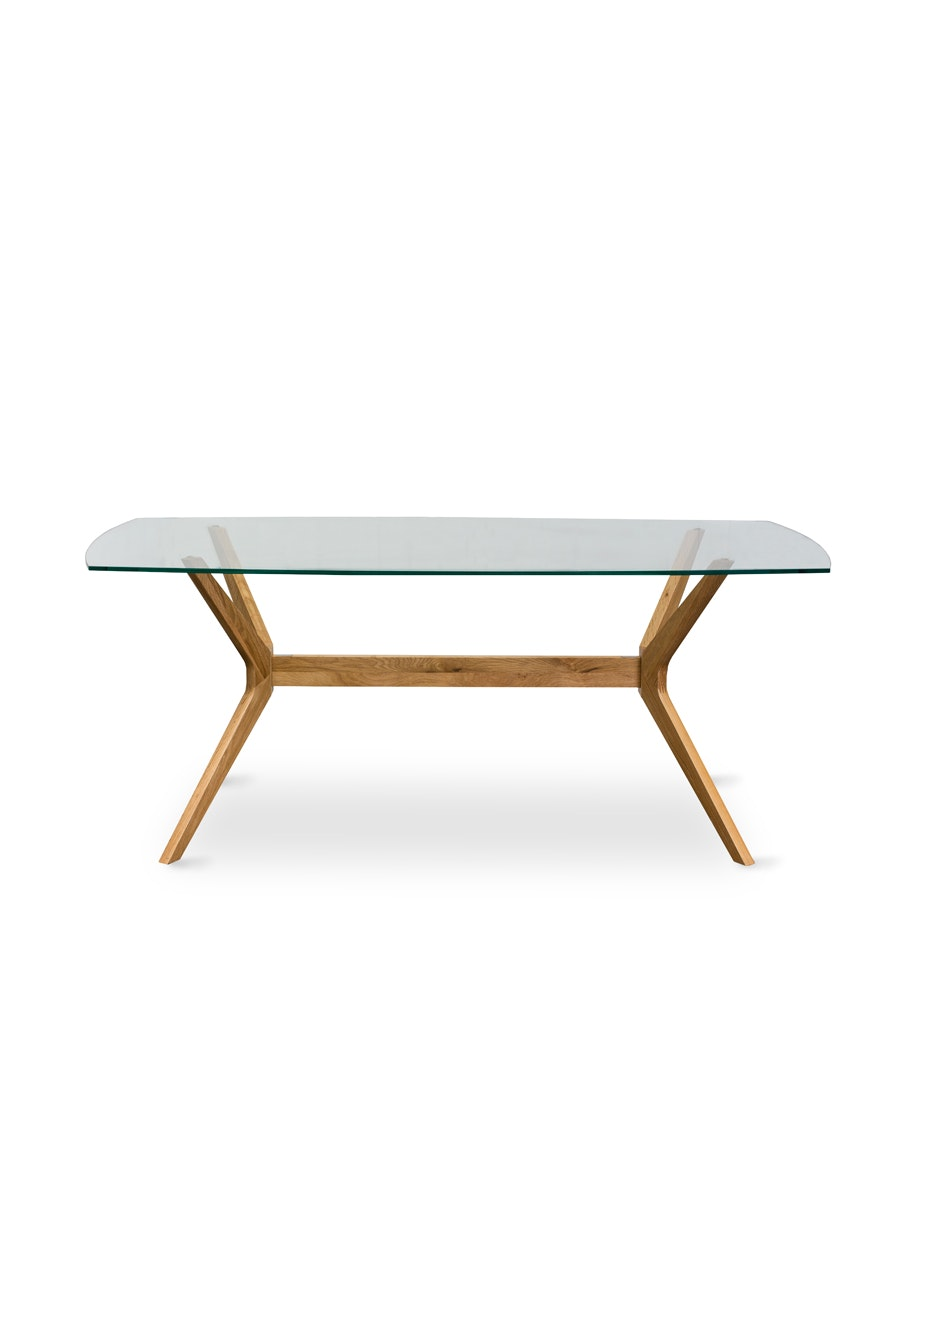 Furniture By Design - Milano Dining Table Glass Top- Light Oak